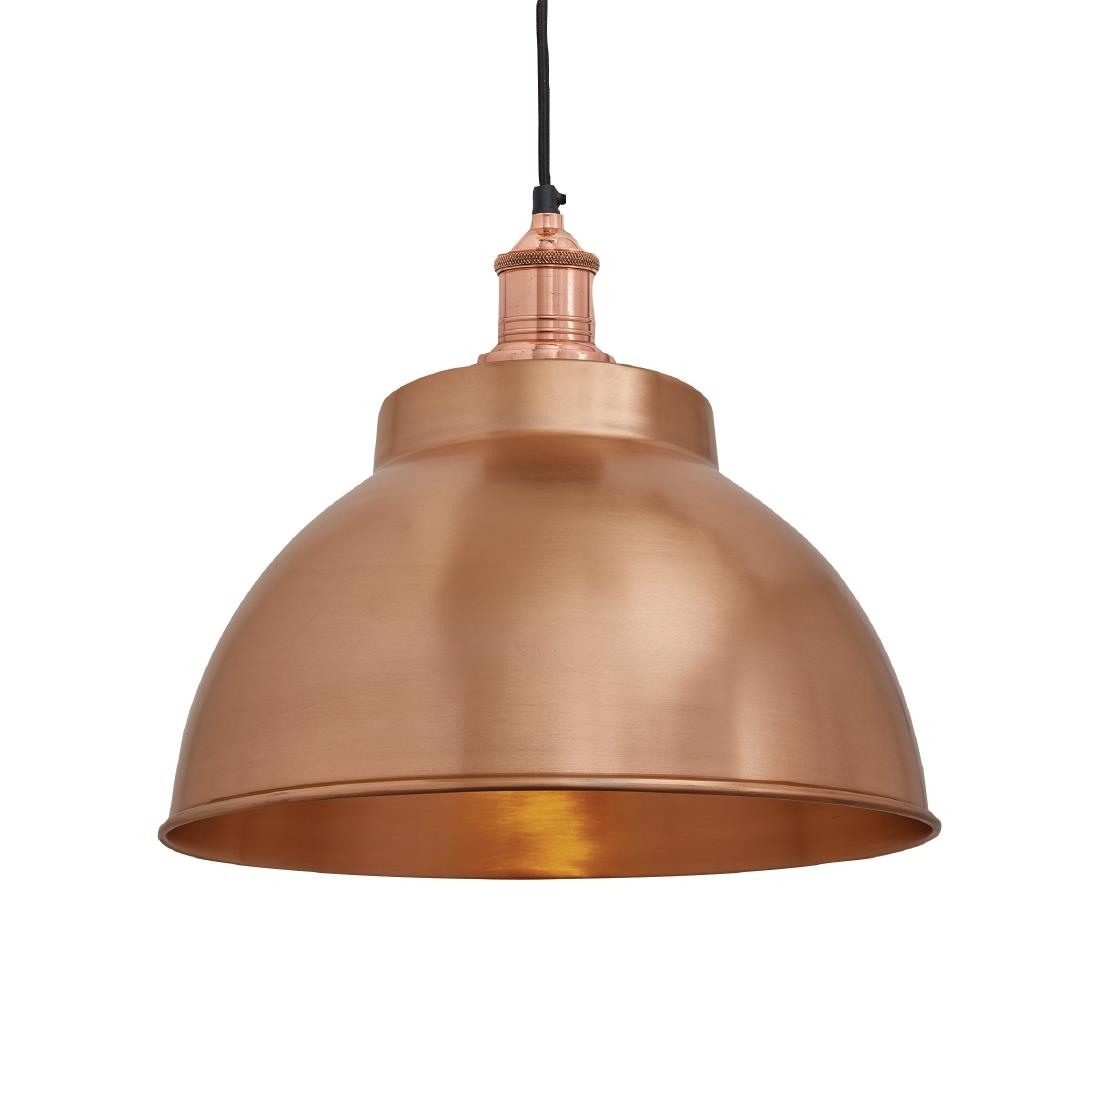 Image of Industville Brooklyn Dome Pendant Light Copper 330mm